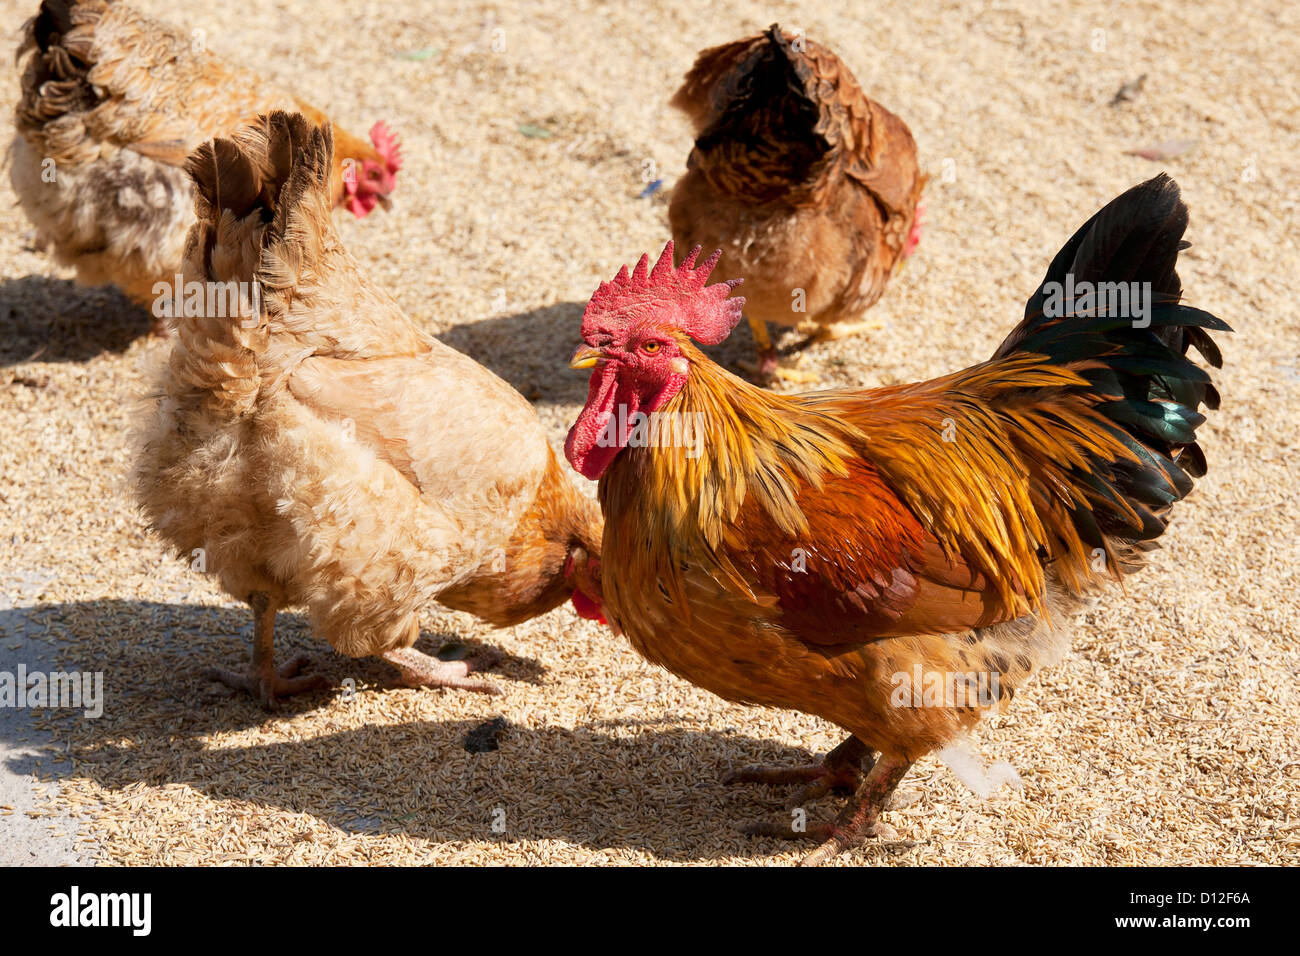 Chickens eating rice that is laid out to dry in Southern China - Stock Image